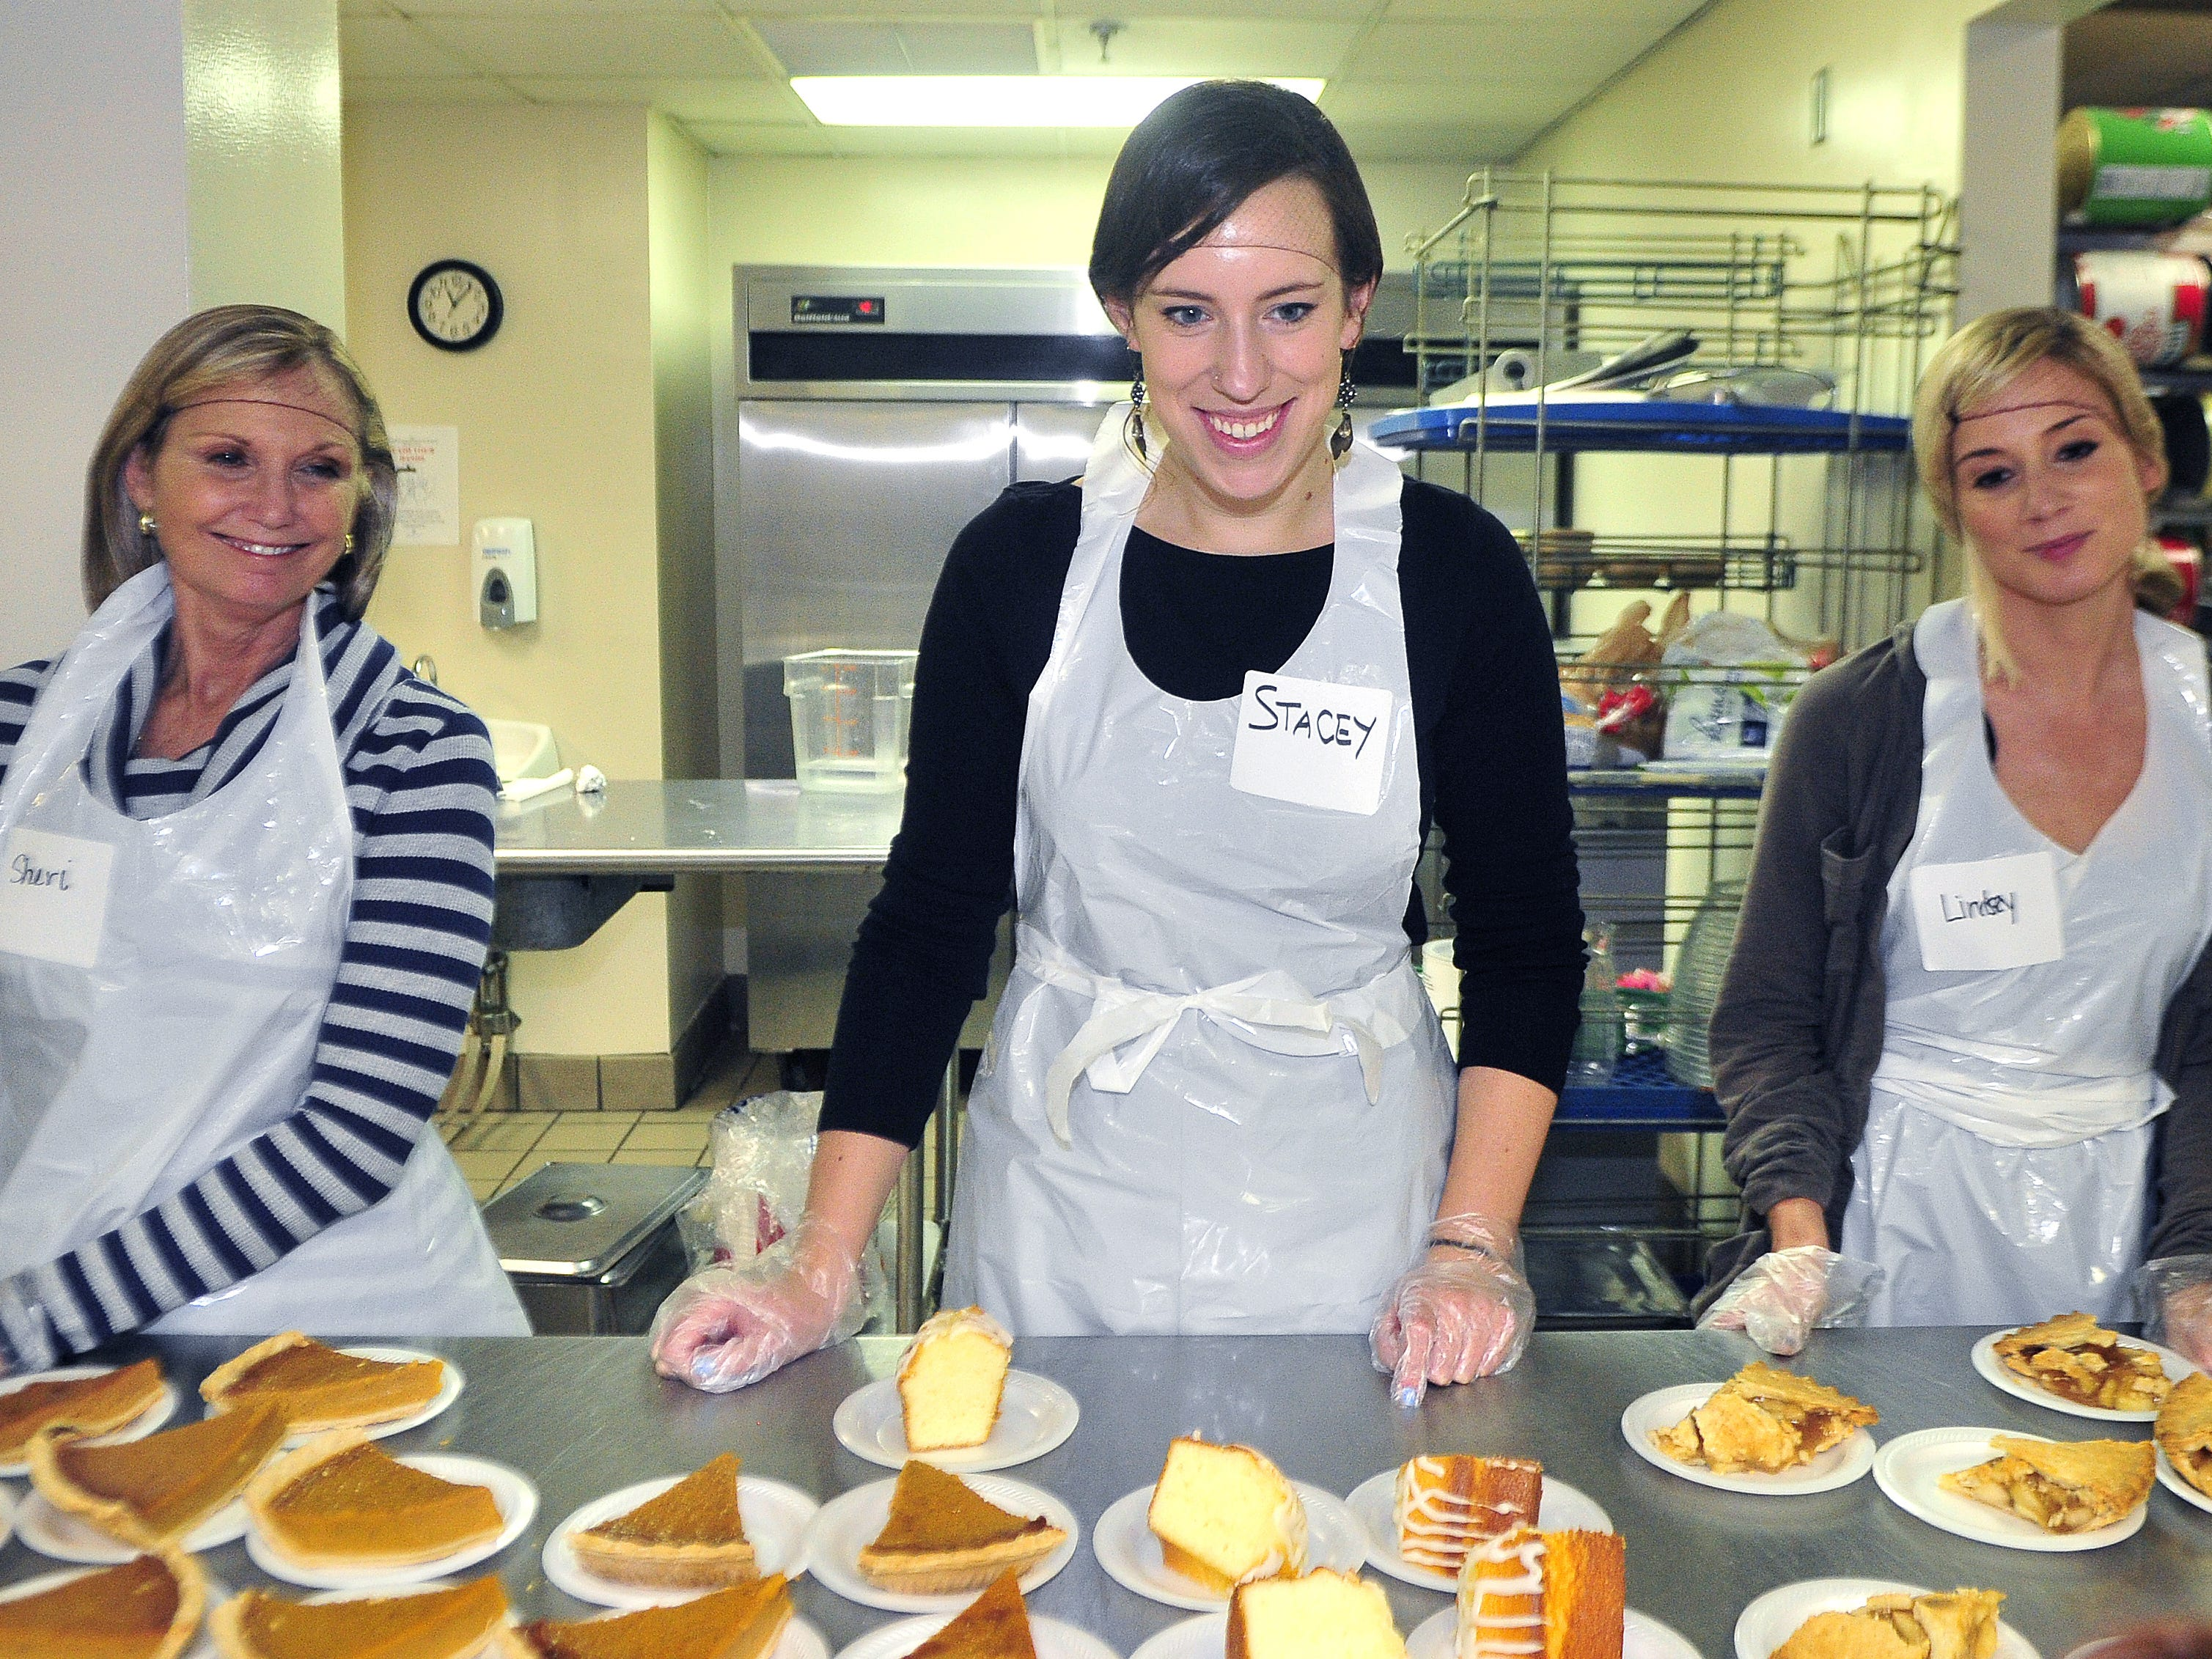 Tennessean reporter Stacey Barchenger, center, helps serve dessert with Sheri Baylor, left, and her daughter Lindsey Baylor at the Salvation Army on Nov. 26, 2015.